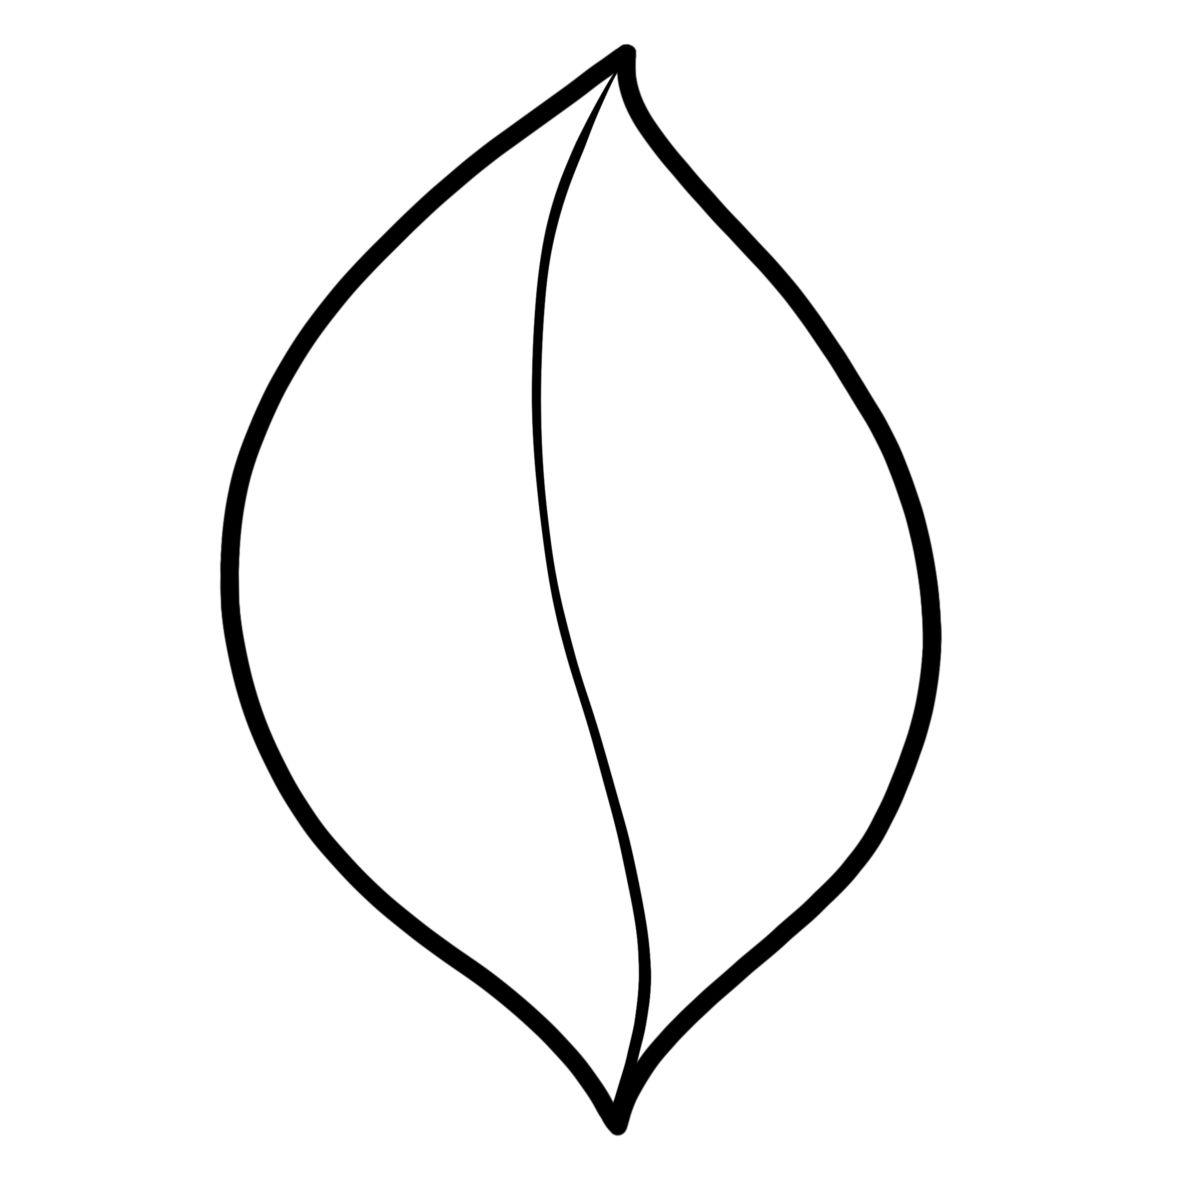 Drawing Leaves Easily Using Simple Shapes